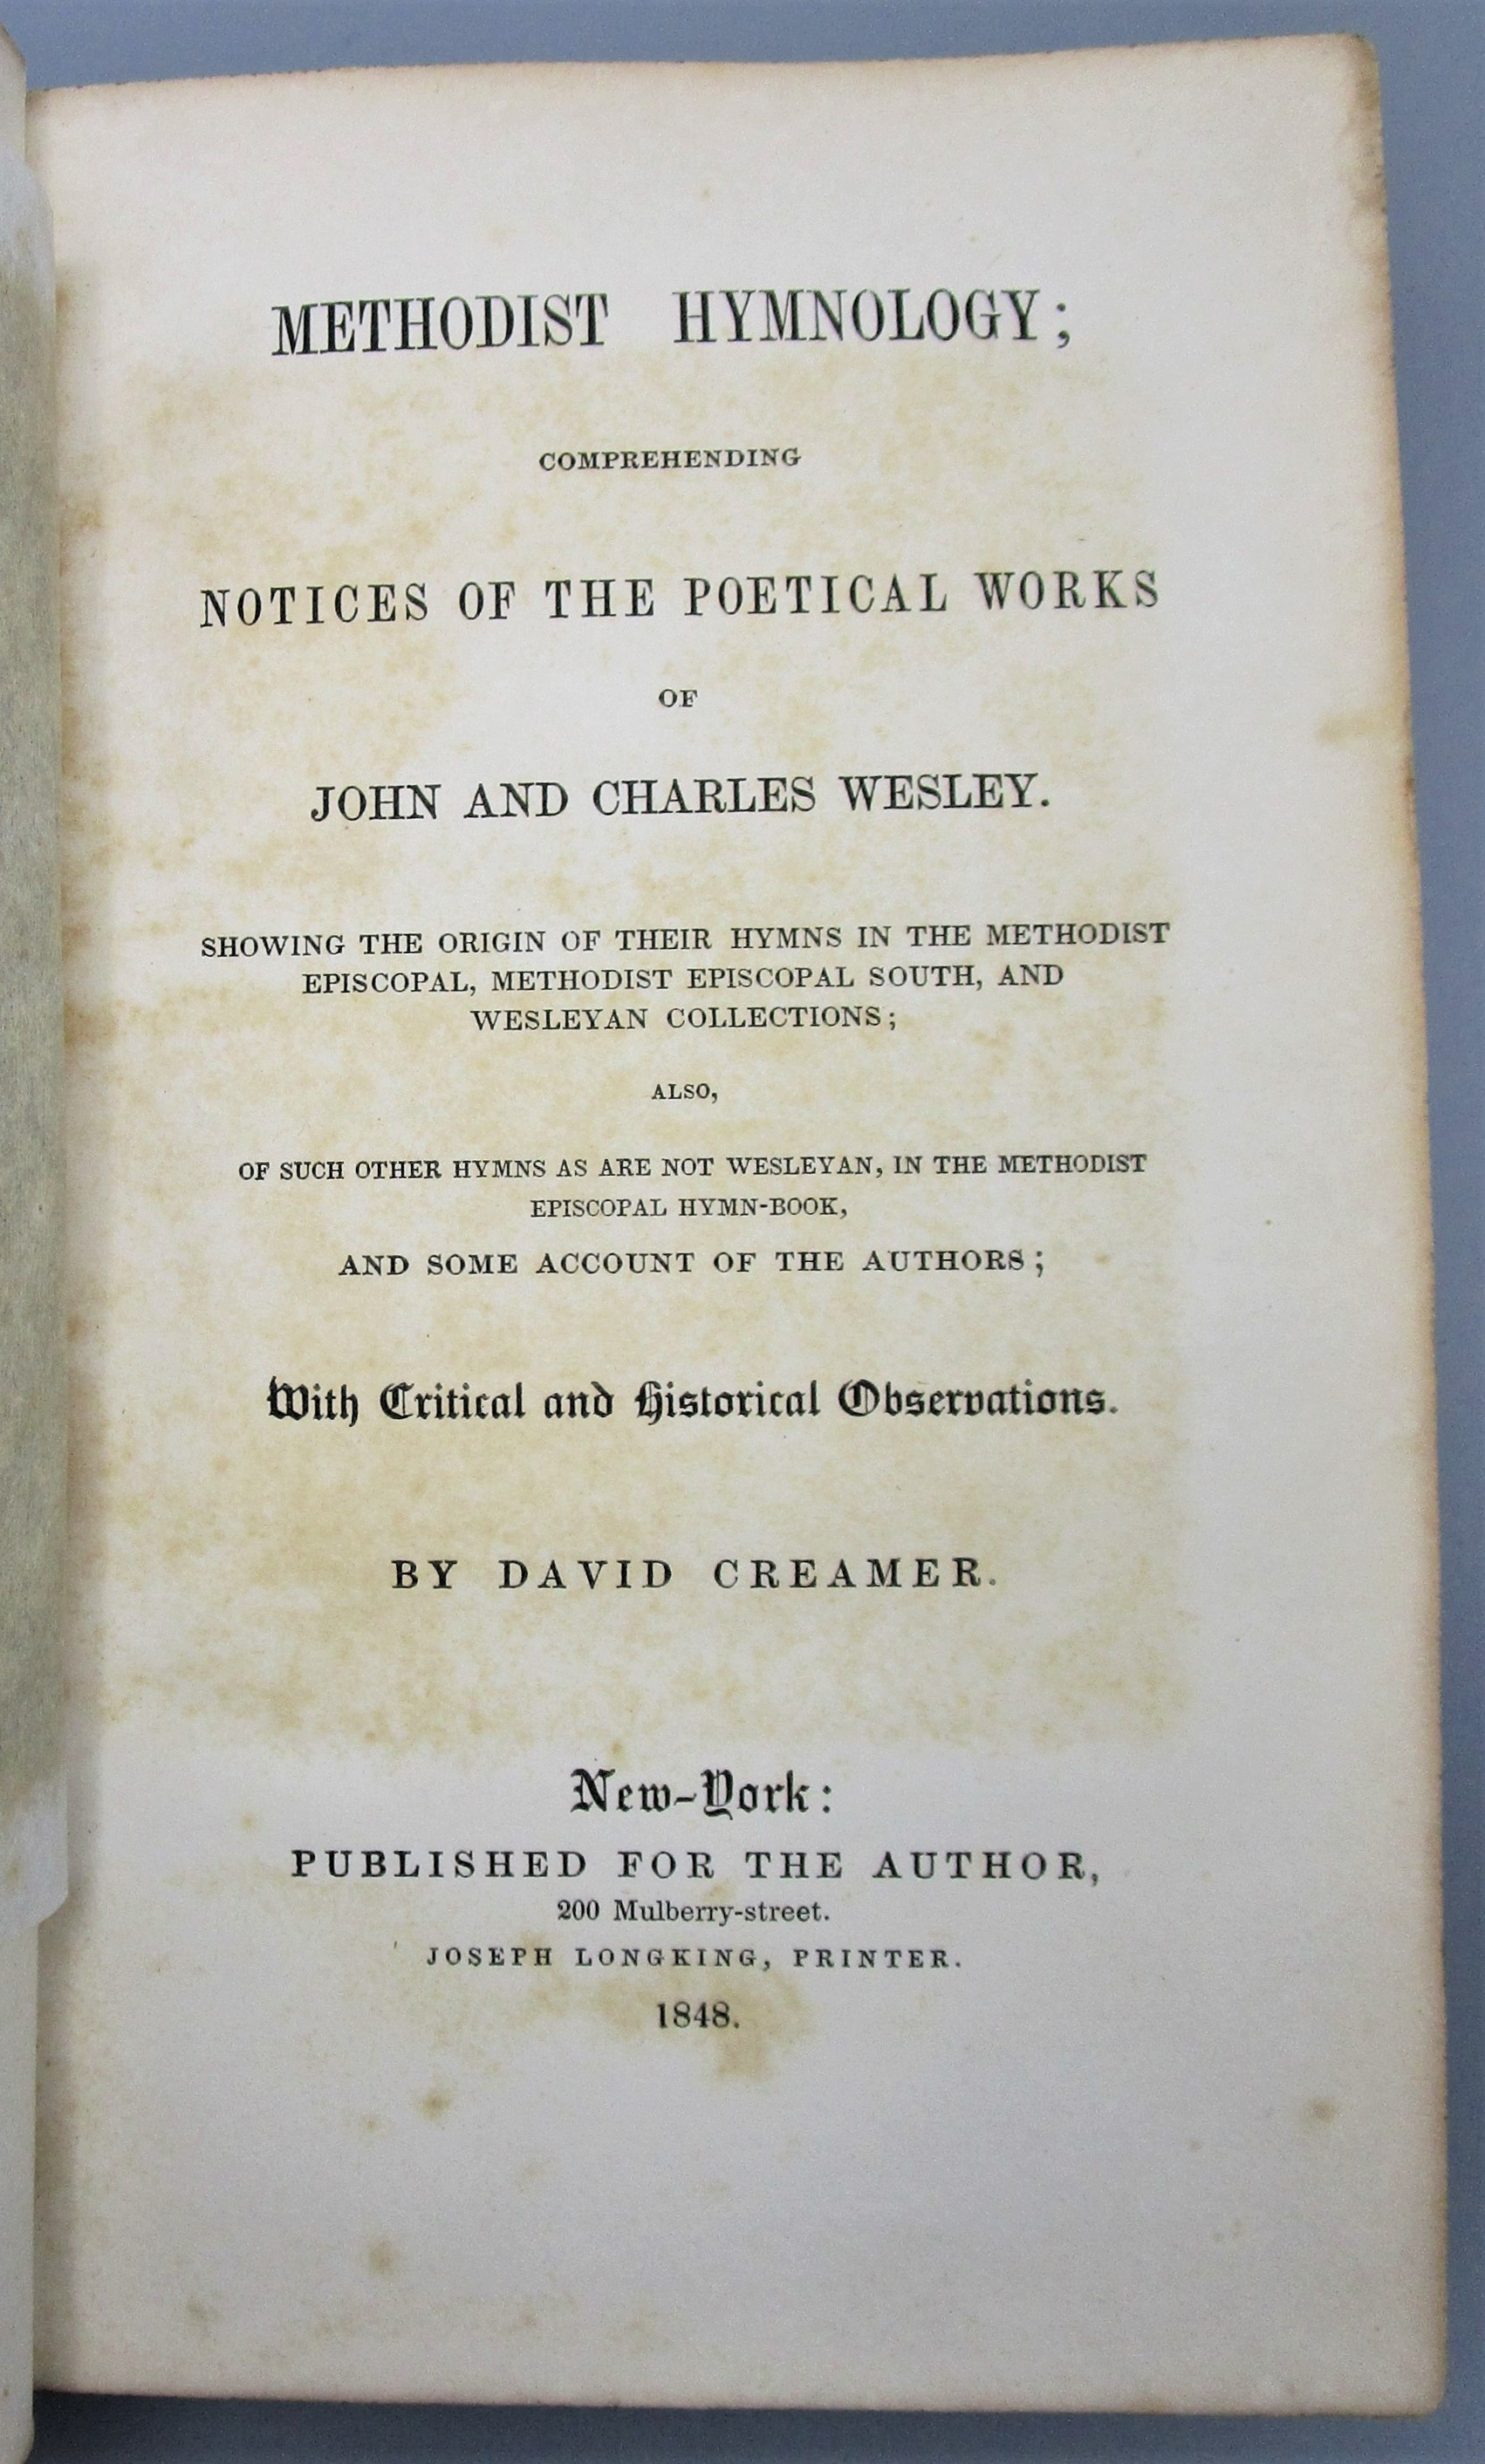 METHODIST HYMNOLOGY OF JOHN & CHARLES WESLEY, by David Creamer - 1848 [Signed]